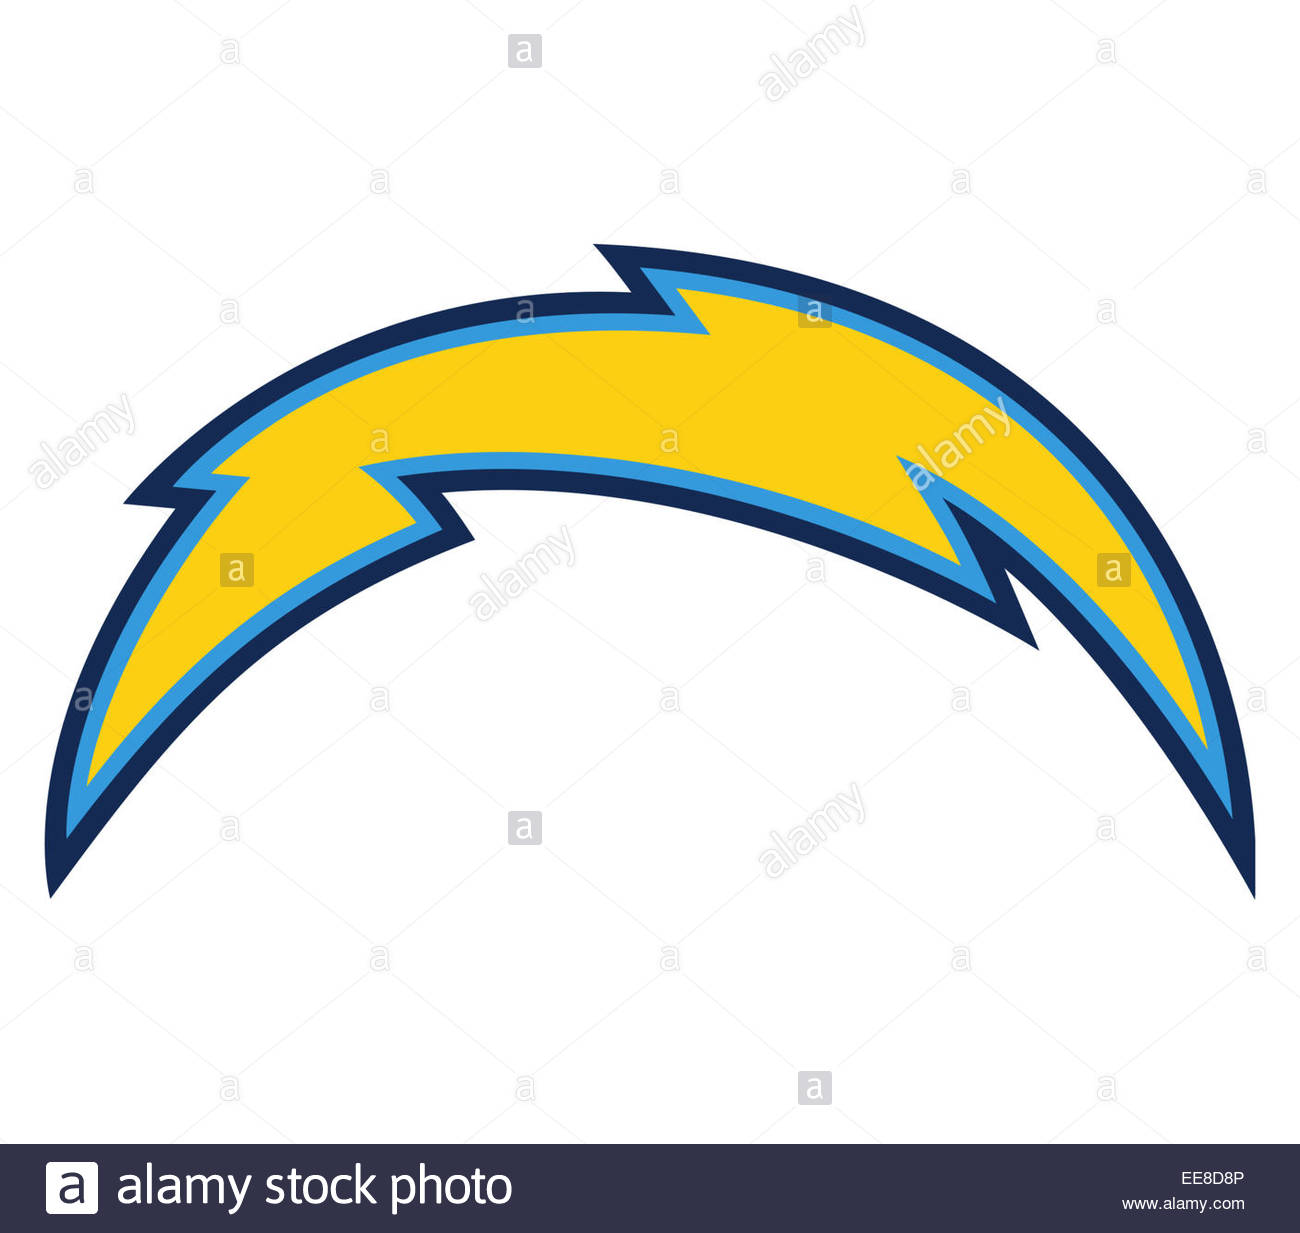 San Diego Chargers Email: San Diego Chargers Icon Symbol Stock Photo: 77632710